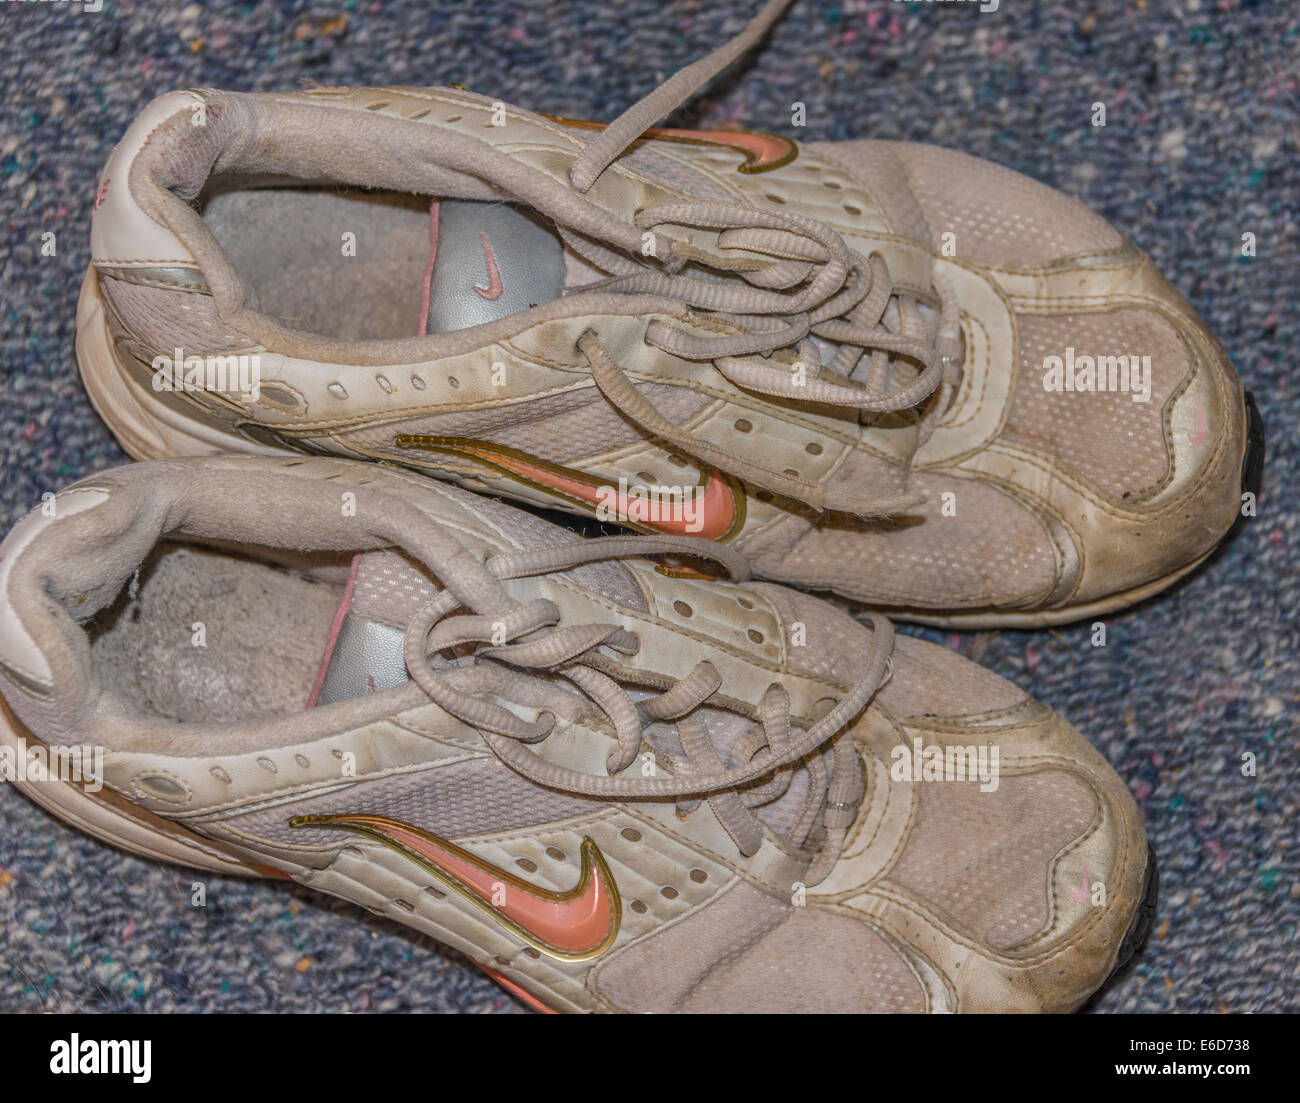 nike runners trainers old shoes - Stock Image